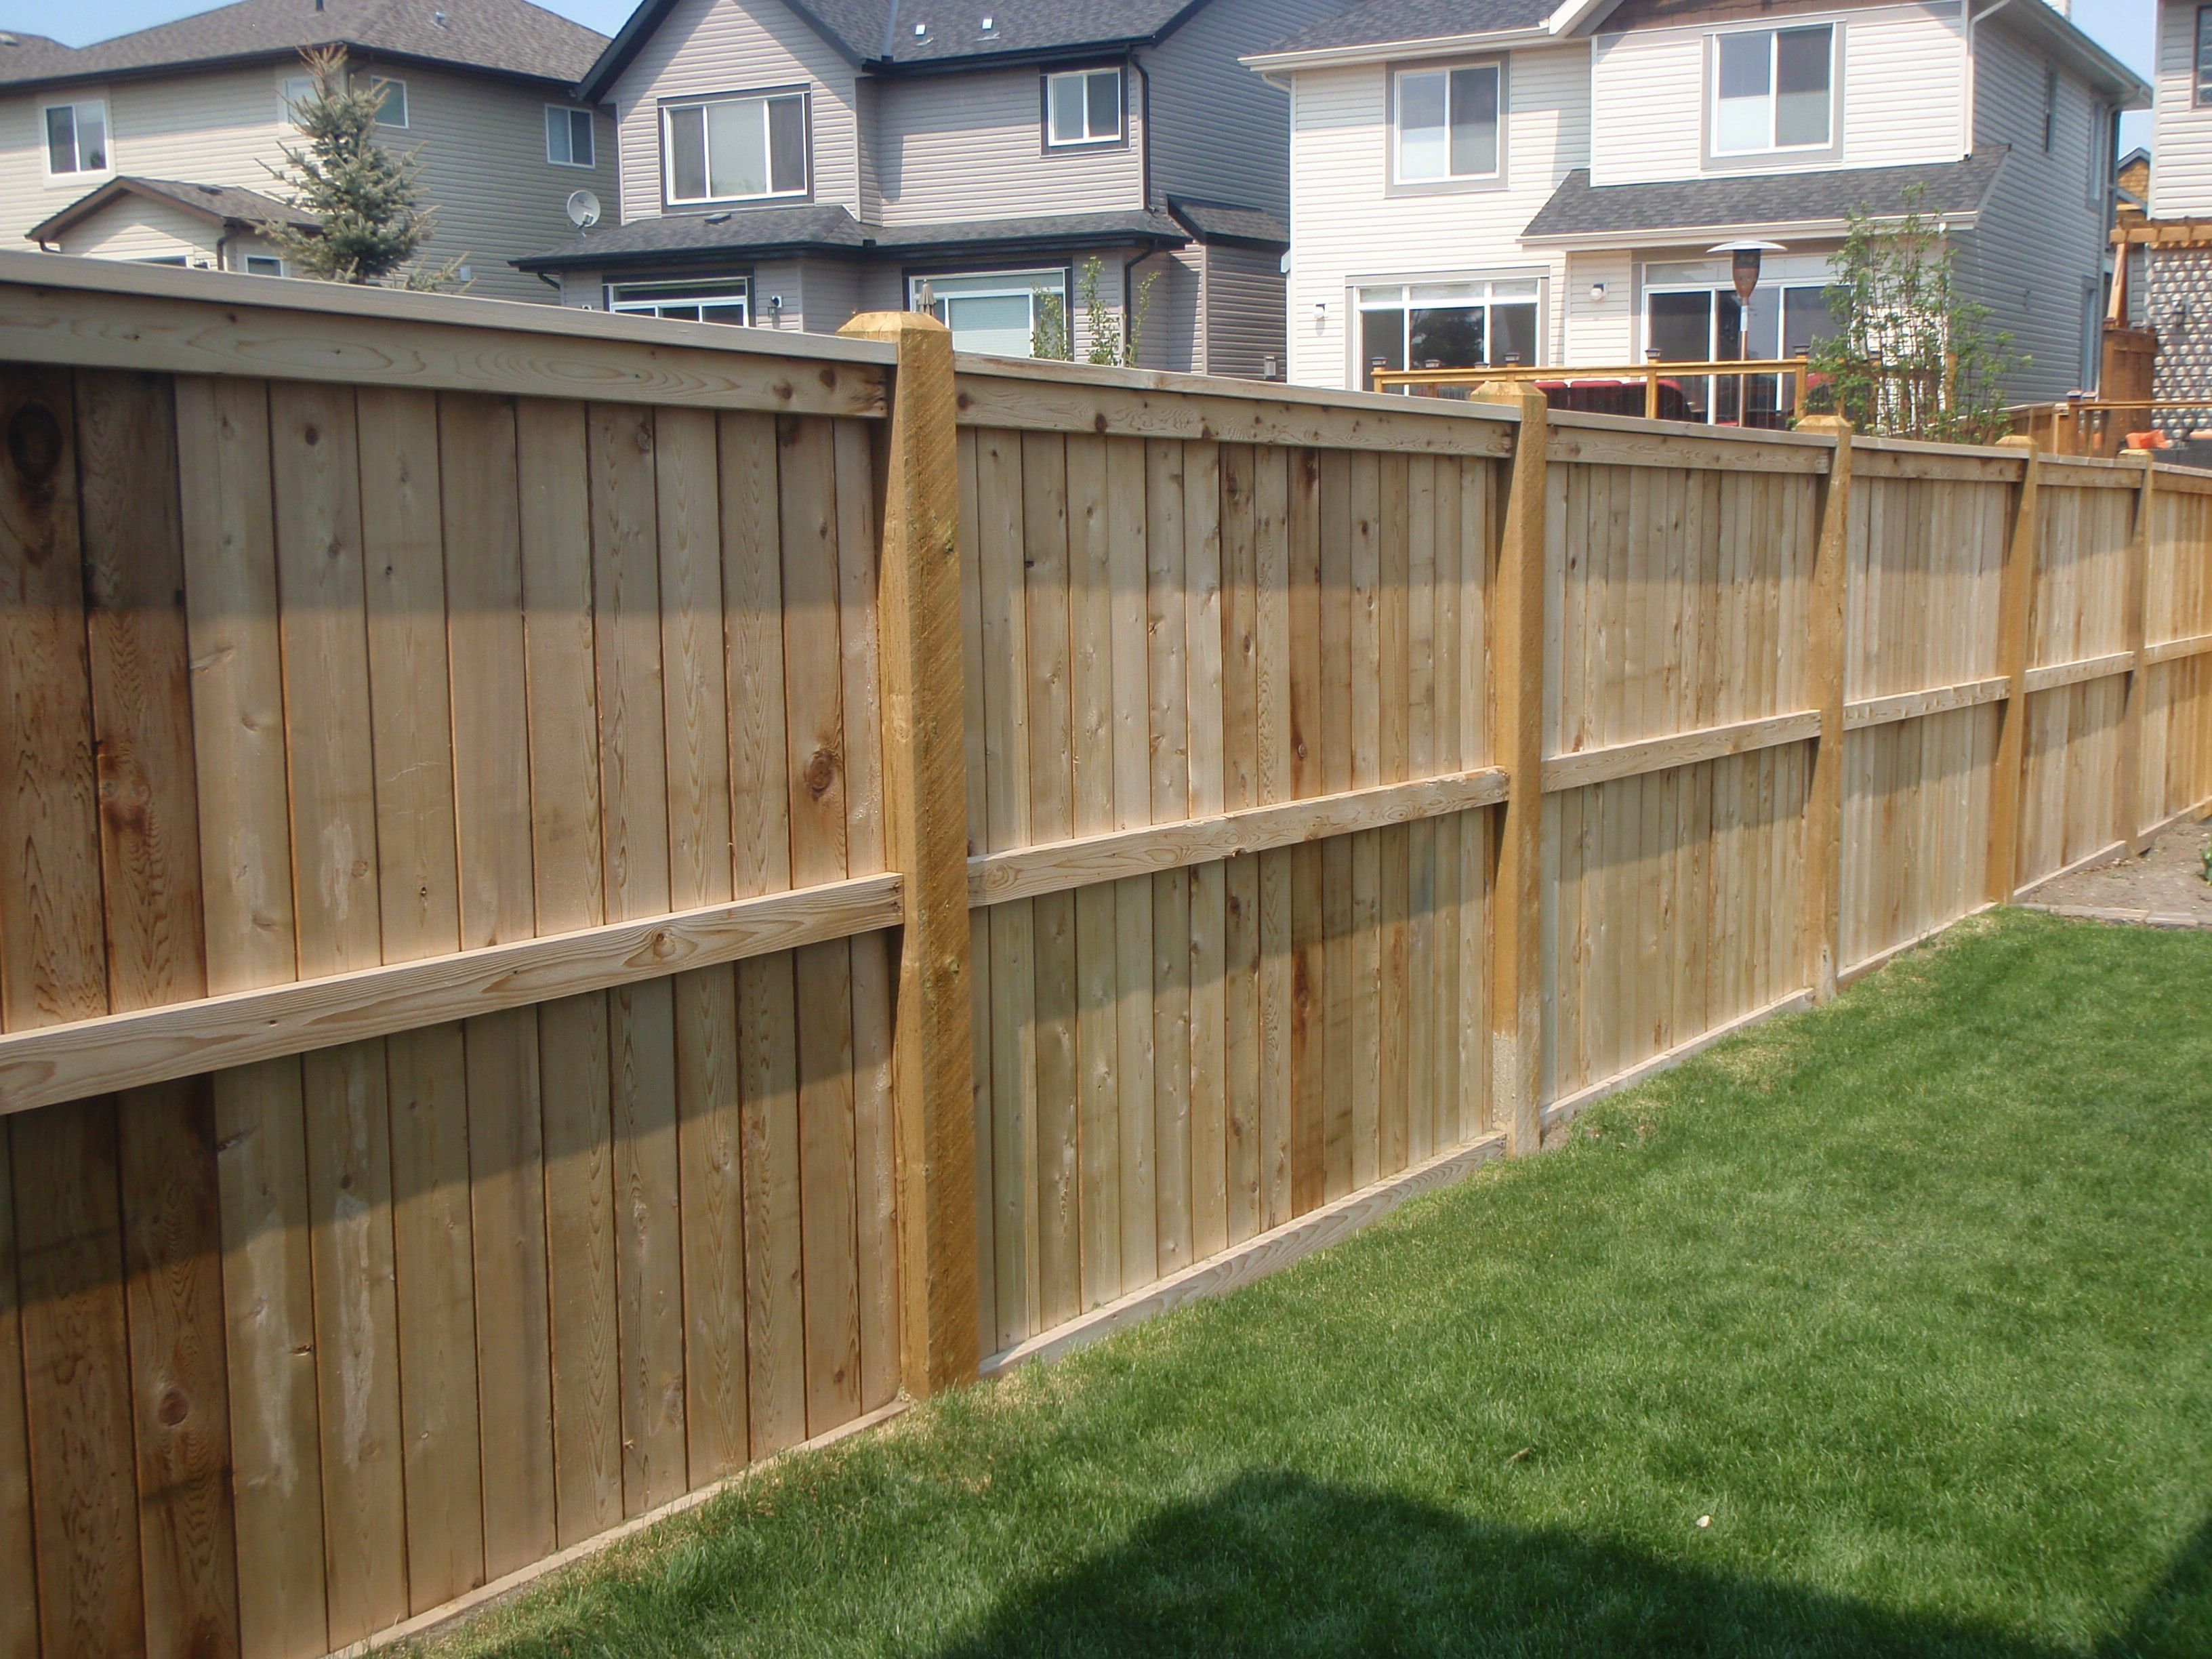 Dog fence ideas fence ideas creative backyard fence ideas classy pine stockade pressure treated wood fence panel for backyard fence ideas with green grass gardening designs trendy western red cedar dog ear pine baanklon Gallery